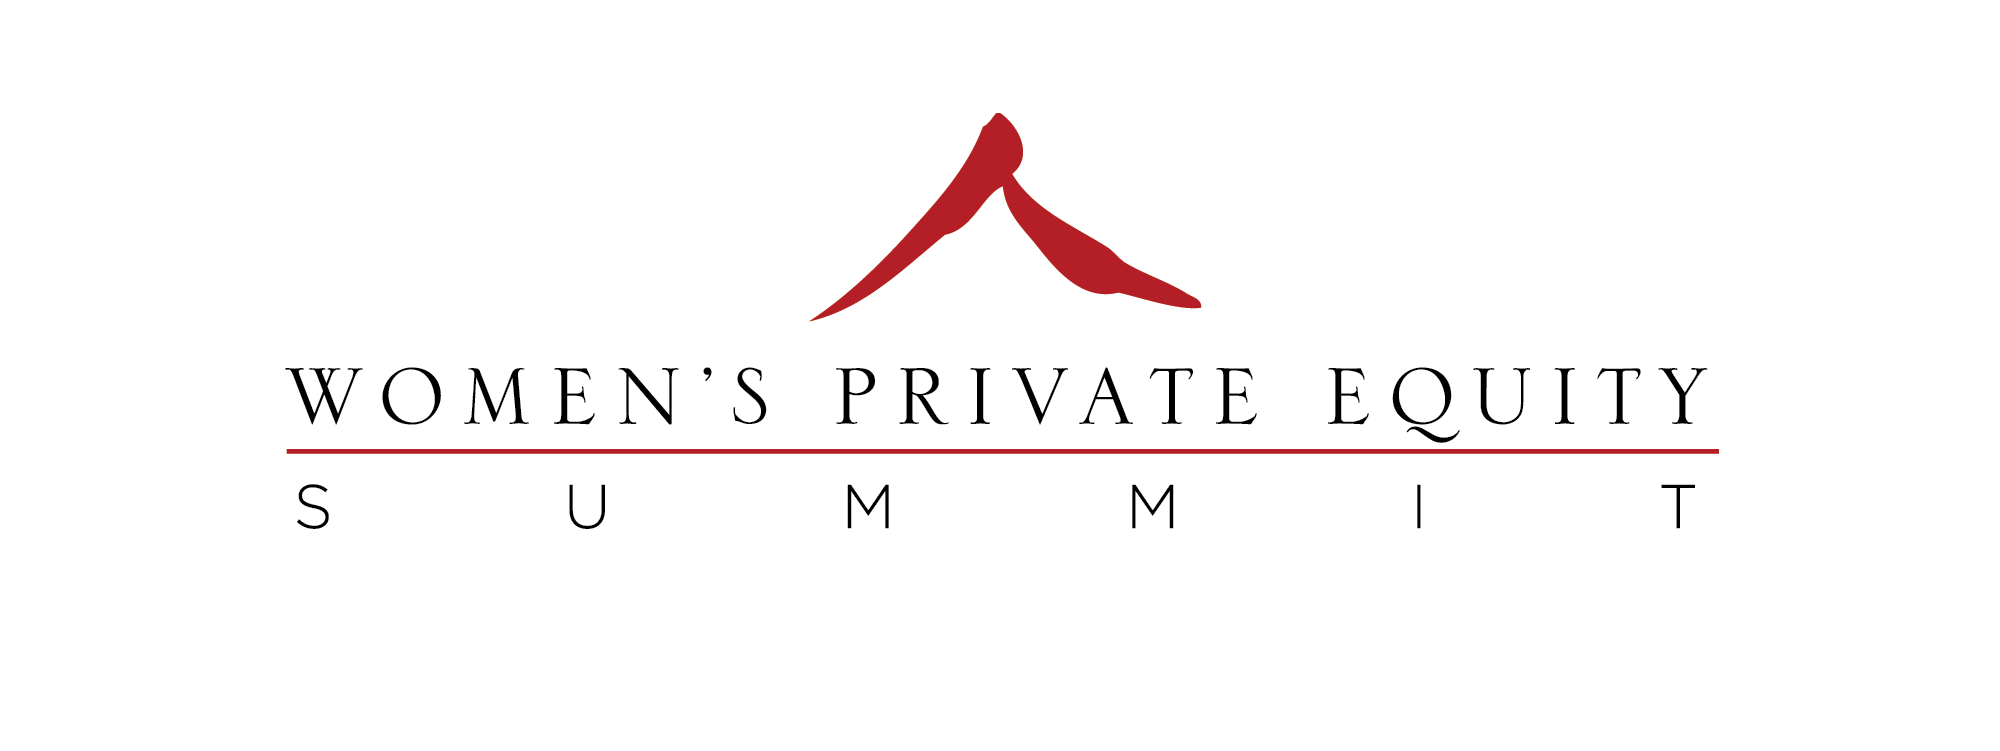 Women's Private Equity Summit